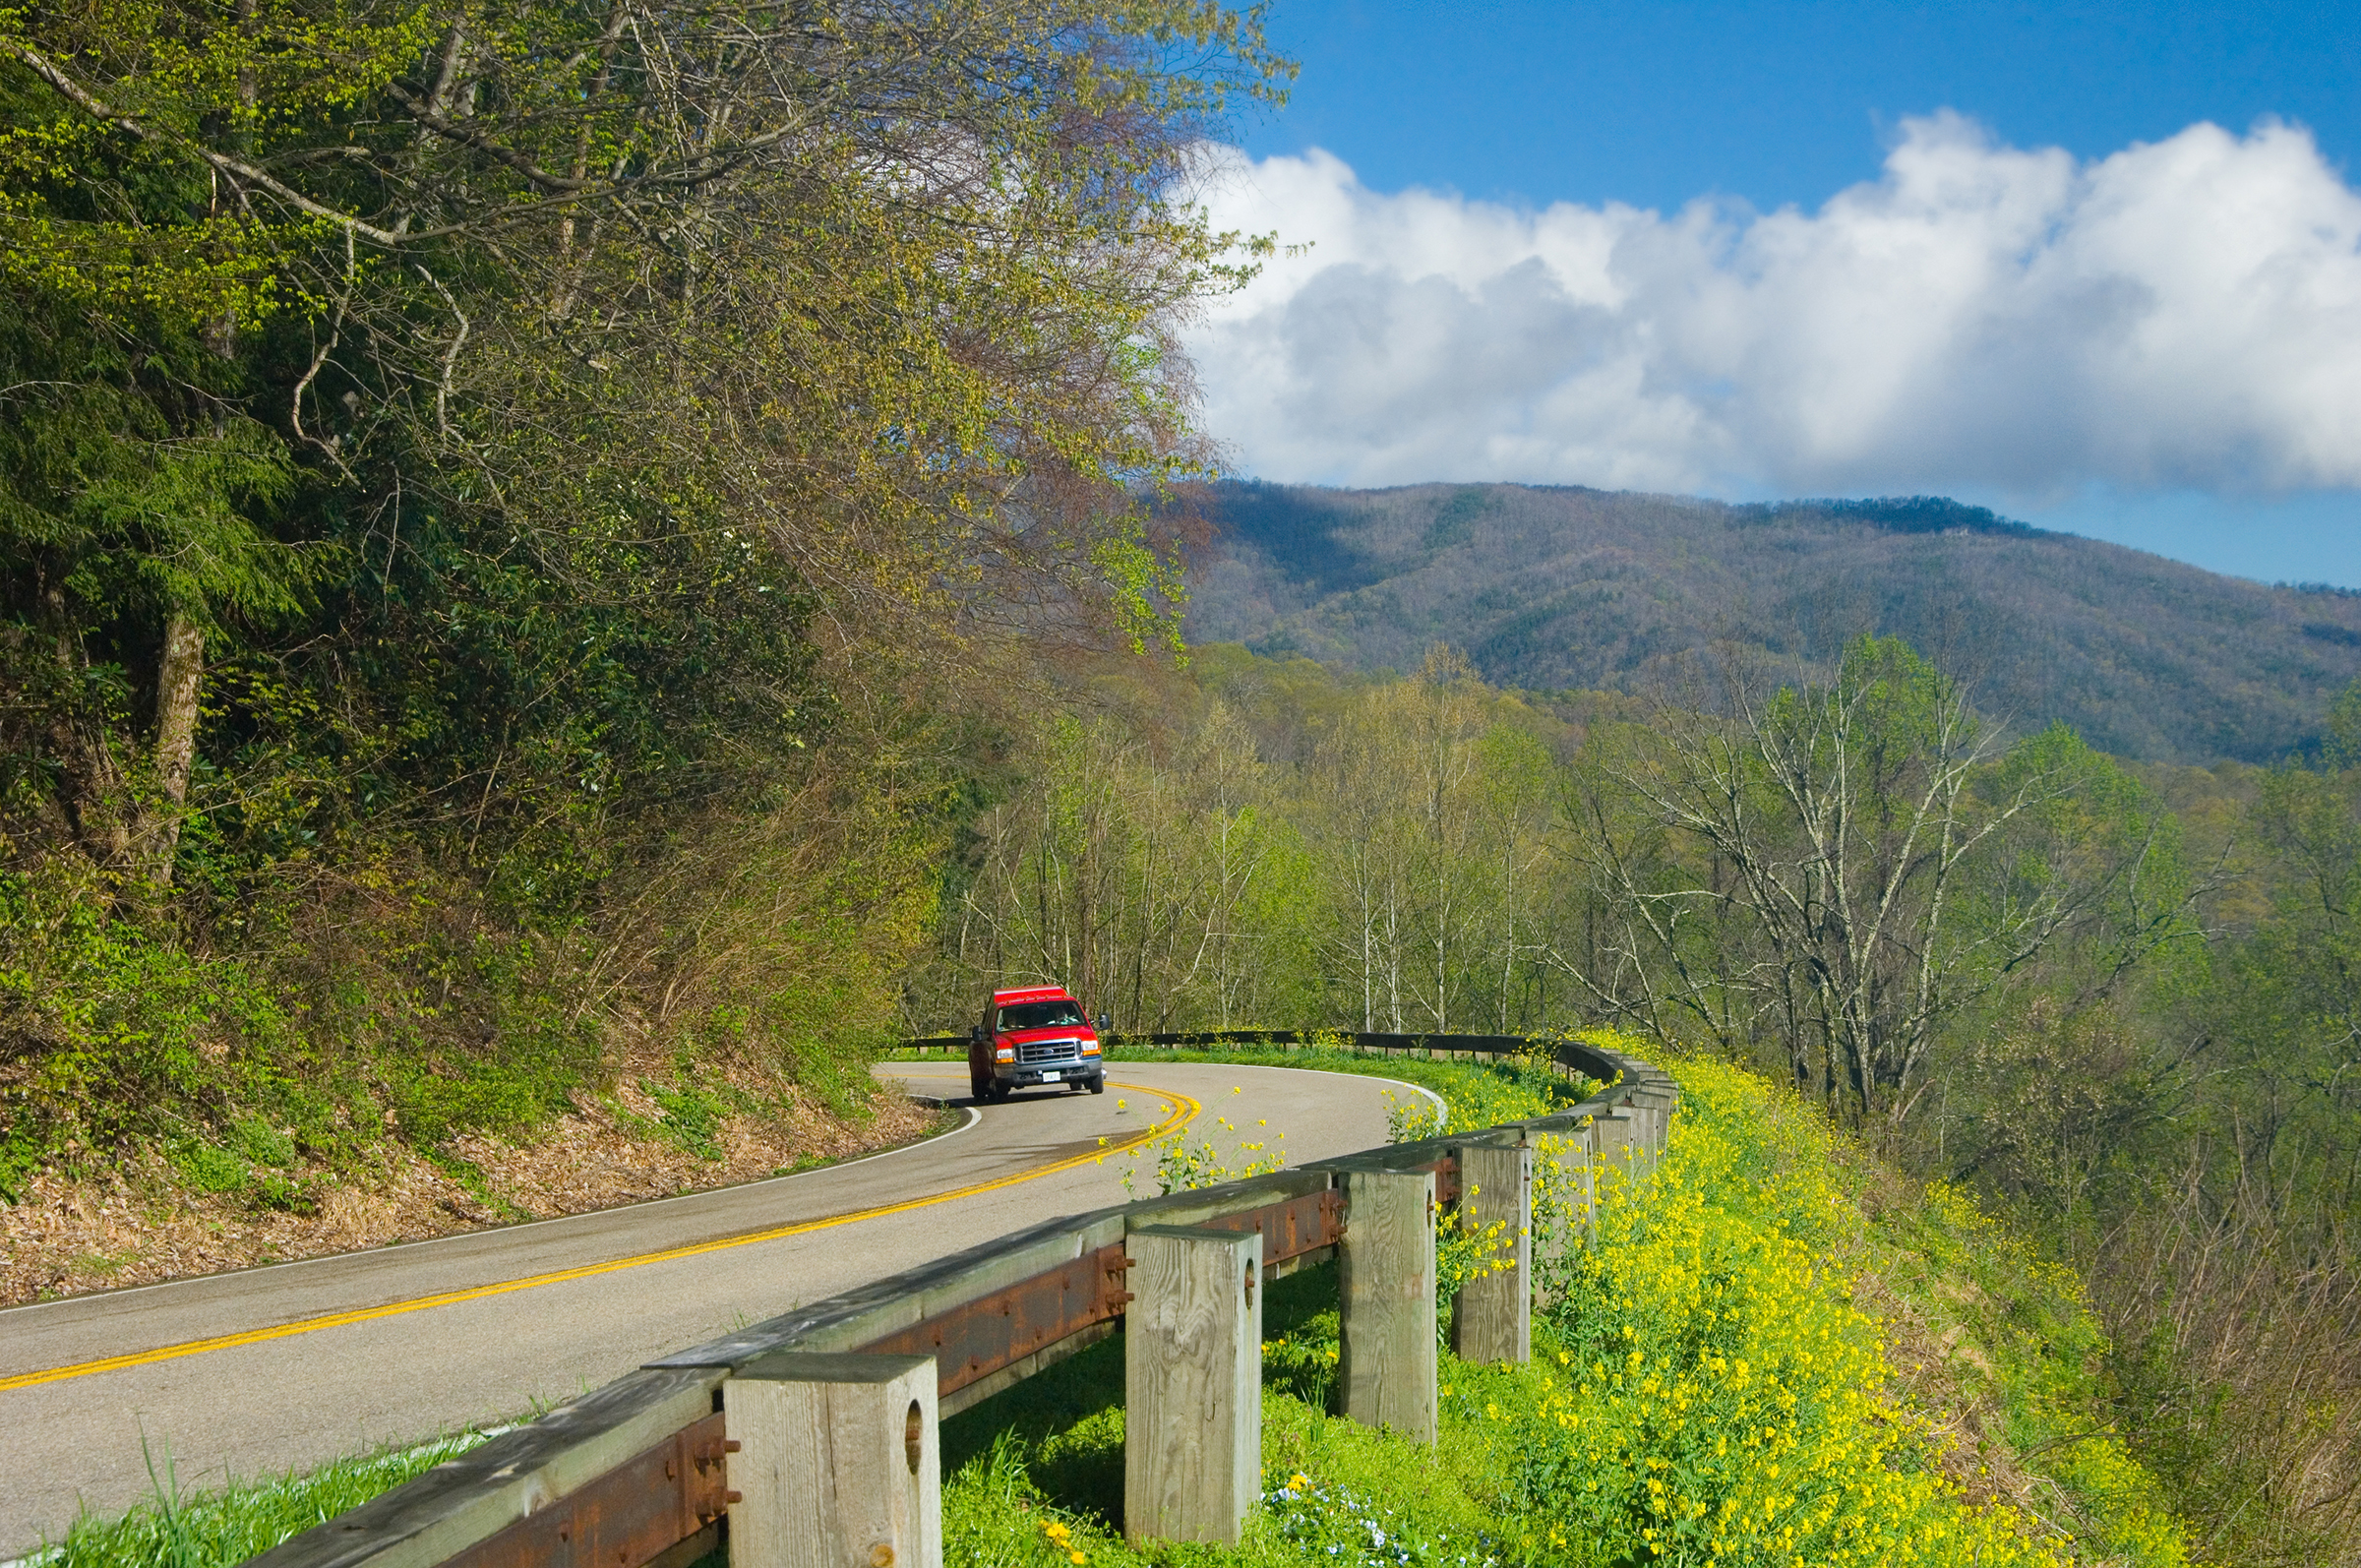 Newly found Gap Highway in Great Smoky Mountains National Park, Tennessee